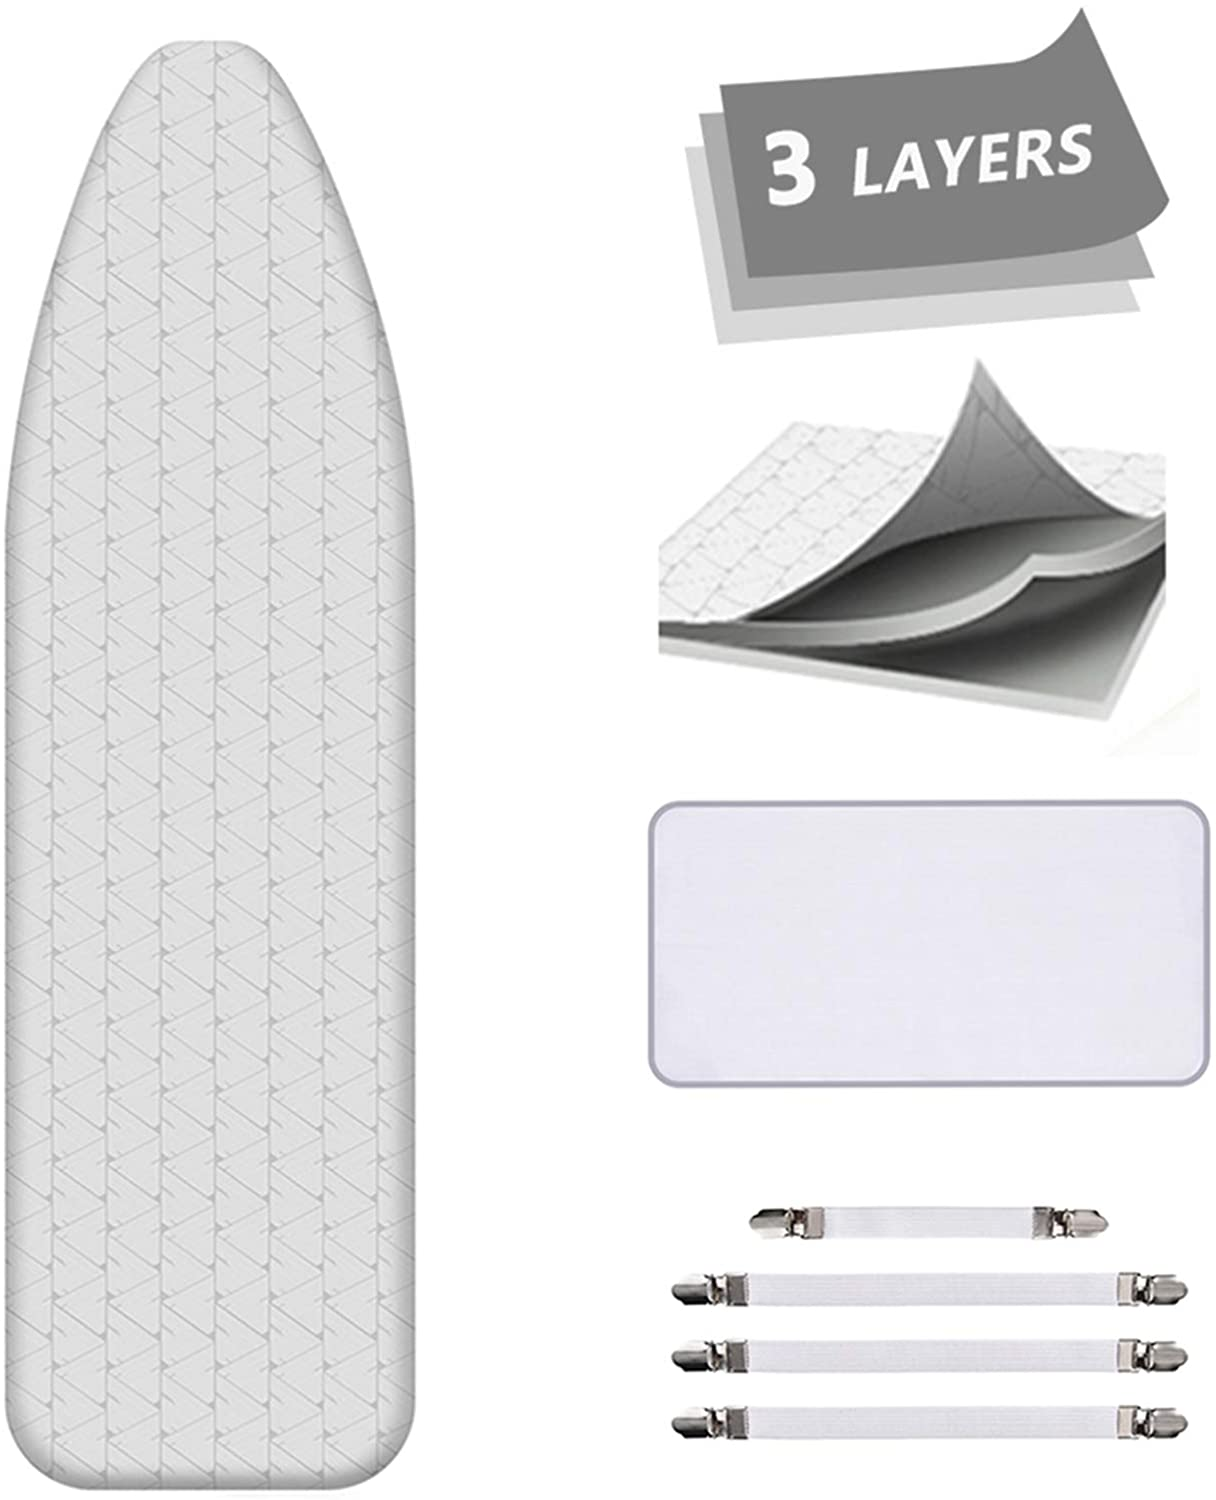 AUSHEN Ironing Board Cover and Pad